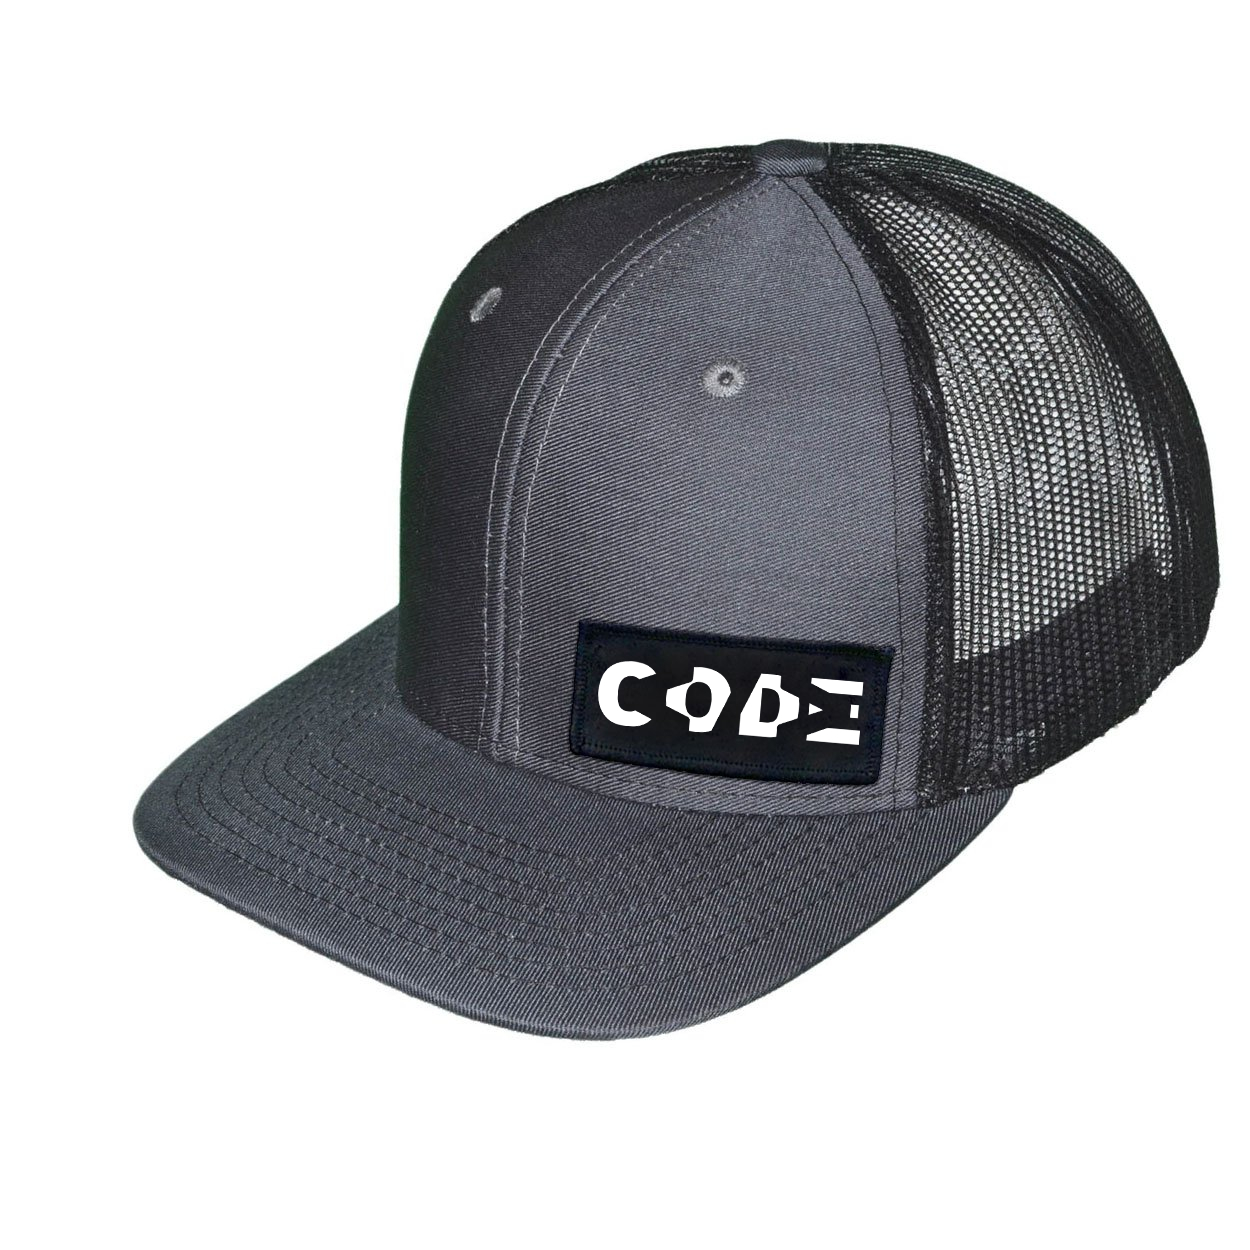 Code Tag Logo Night Out Woven Patch Snapback Trucker Hat Dark Gray/Black (White Logo)